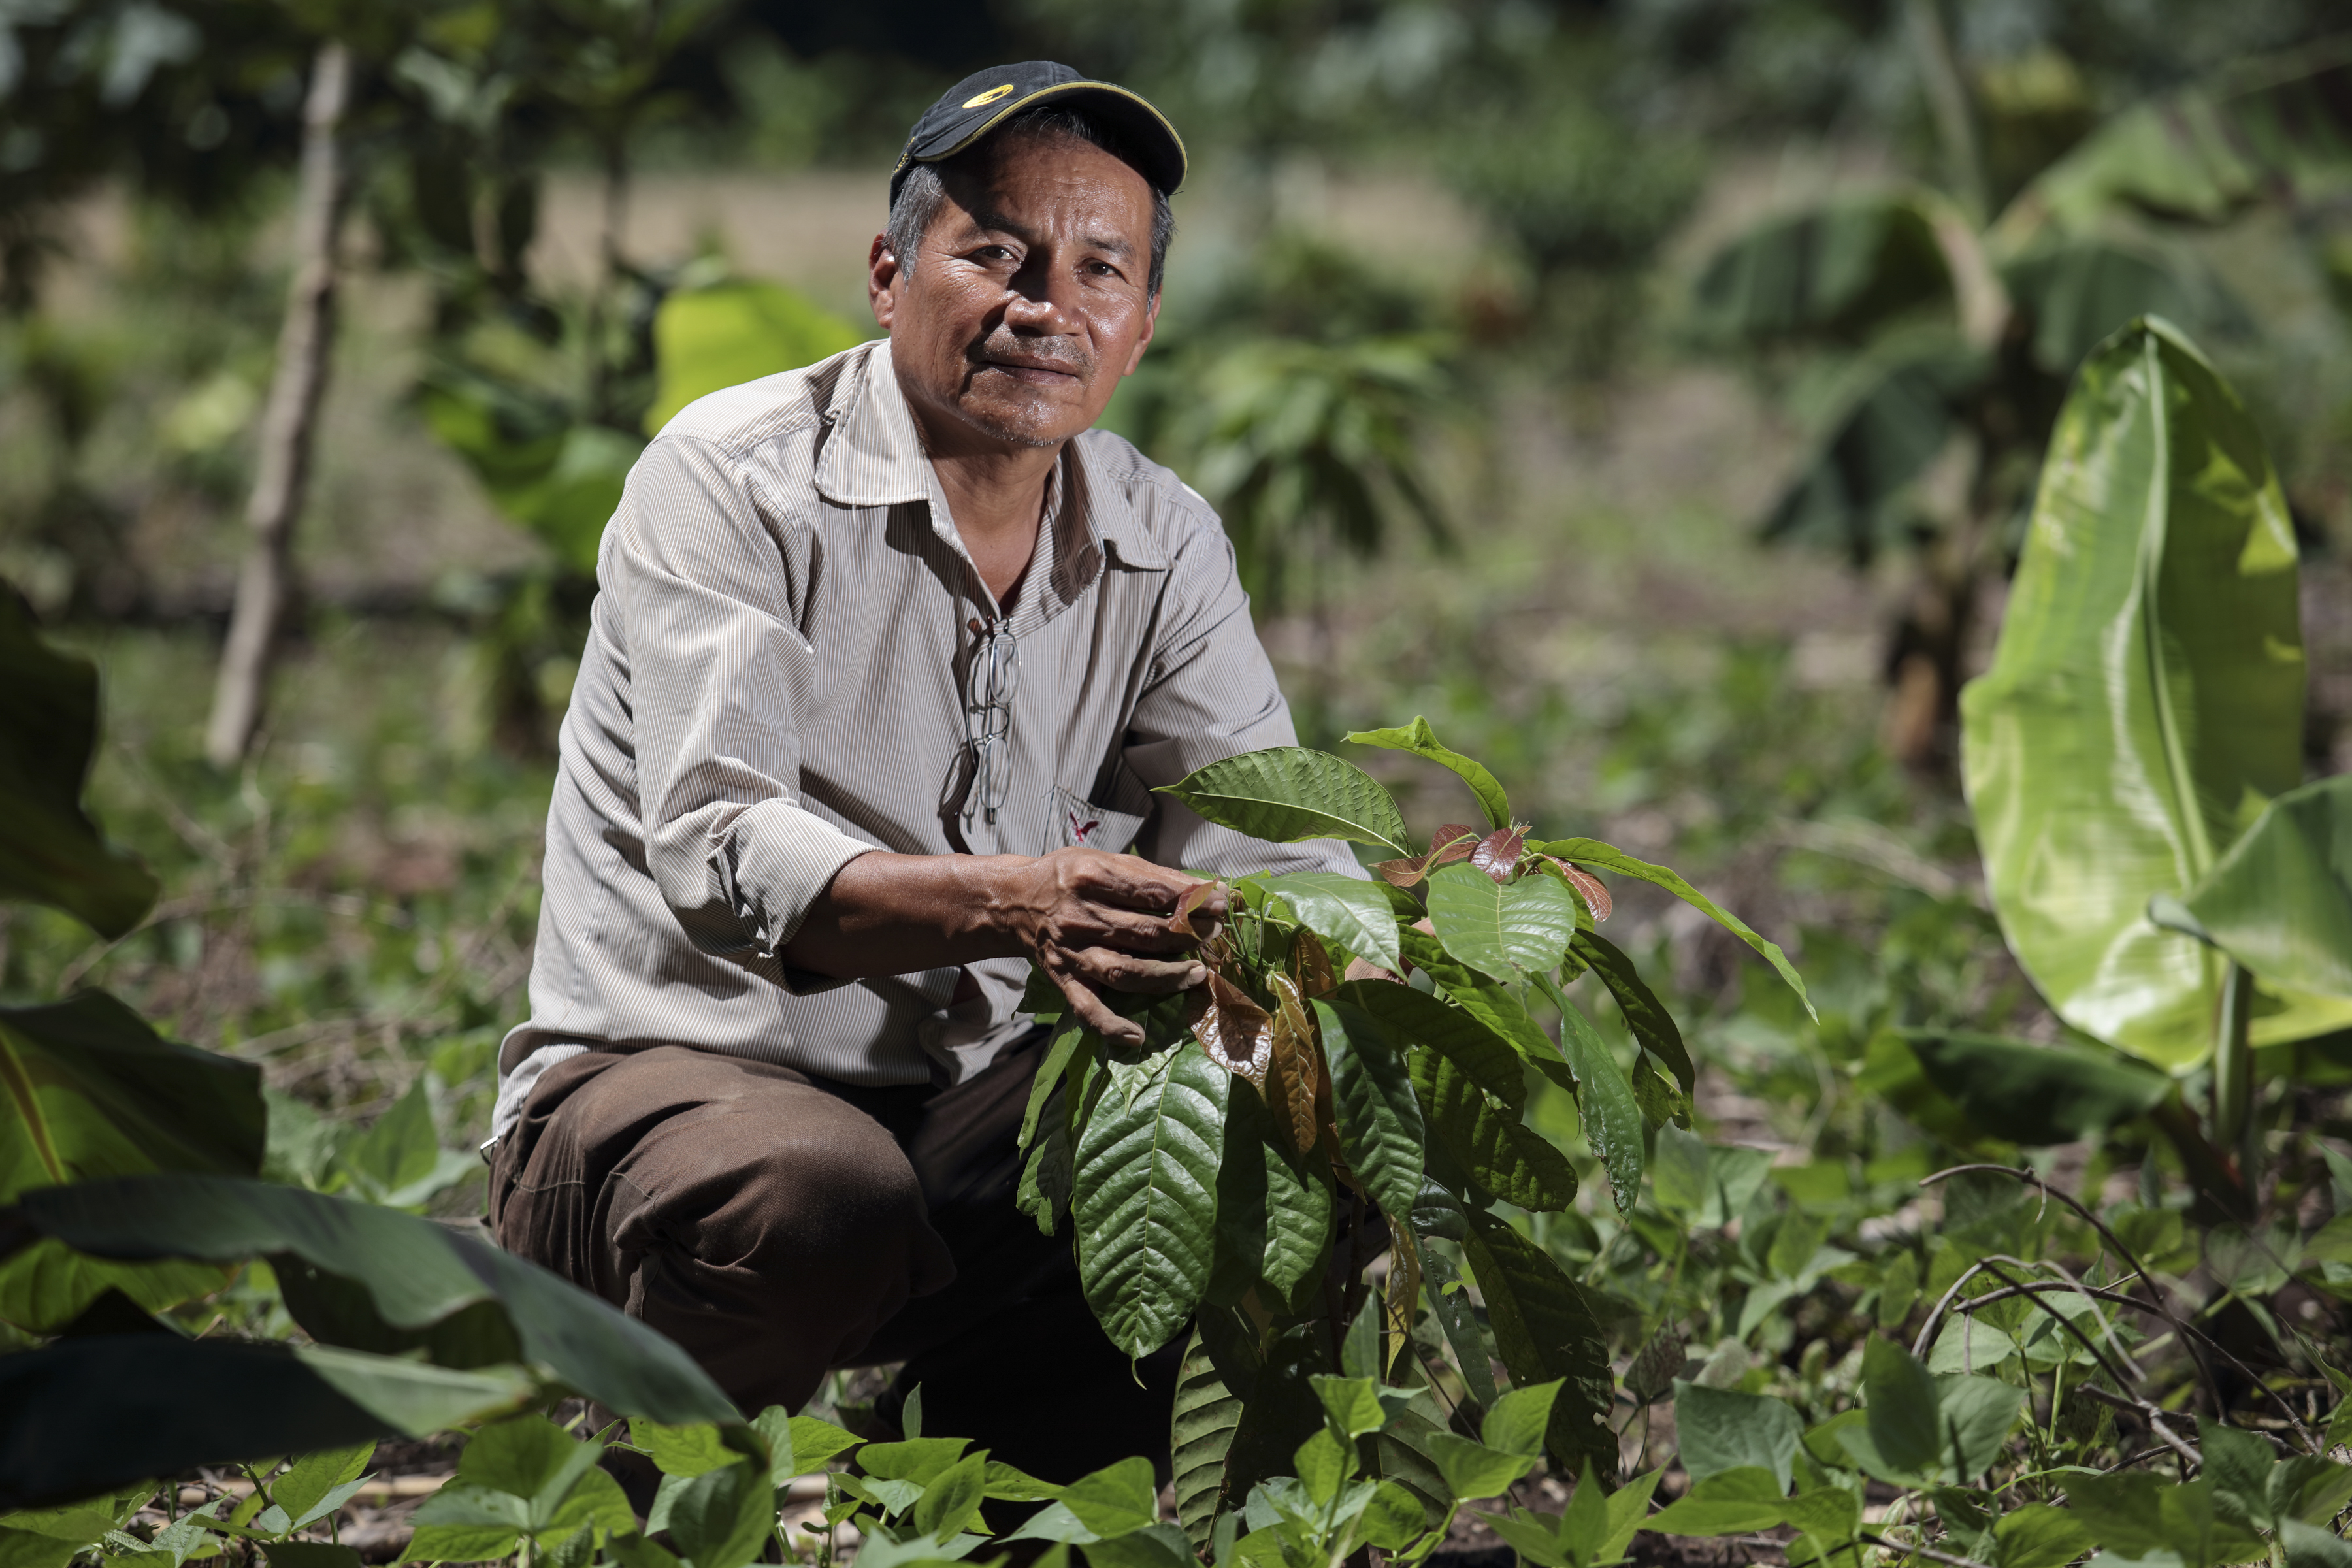 Simon Perez shows off his newly planted cacao trees. Photo by Oscar Leiva/Silverlights for CRS